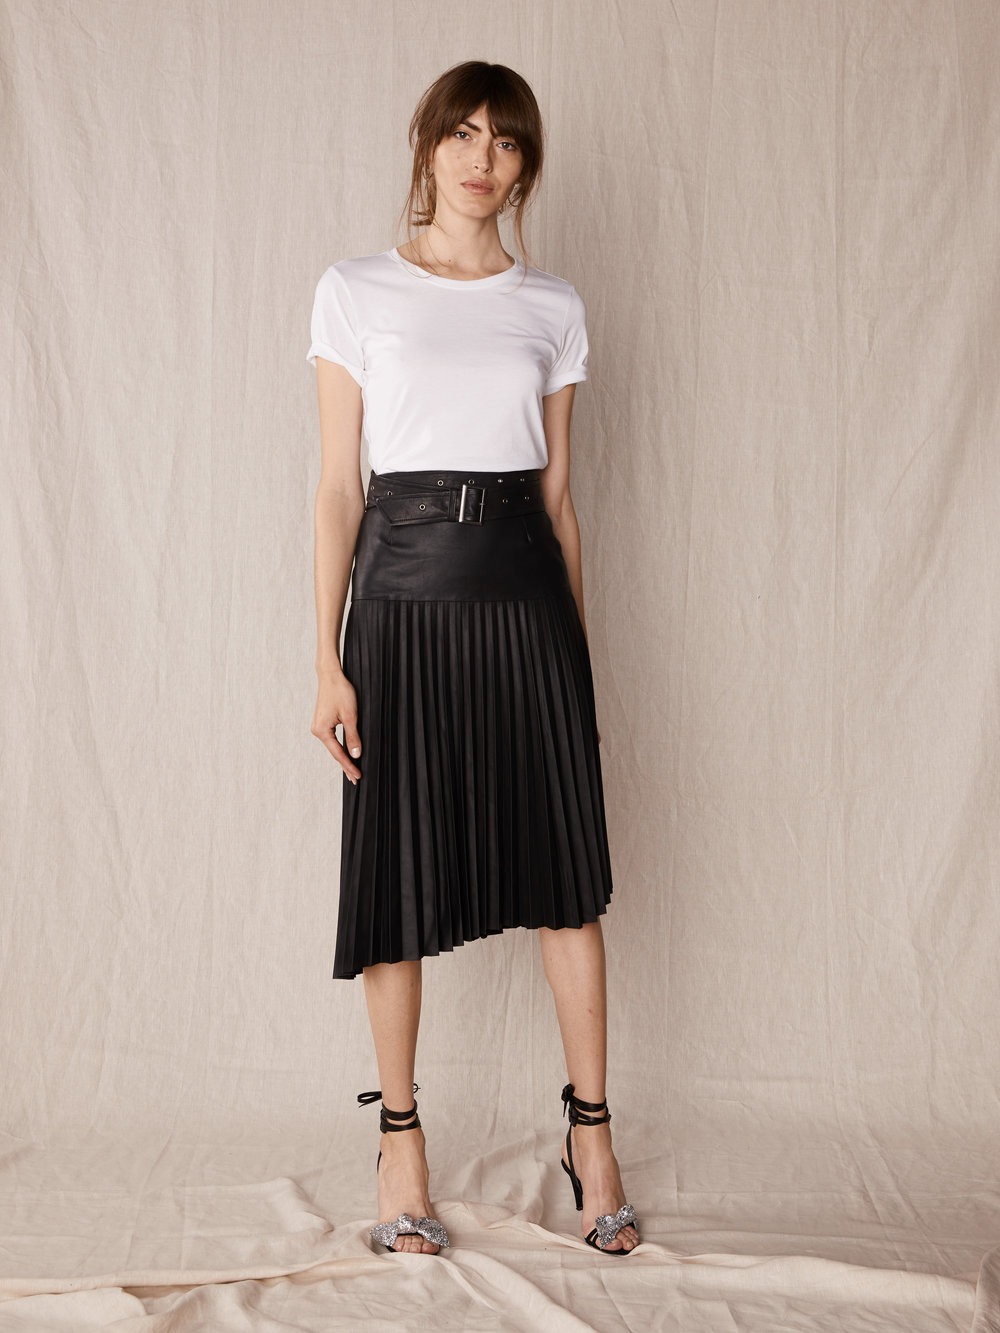 West14th-AW18-ParkAvenue-pleat-skirt-black-leather-front.jpg